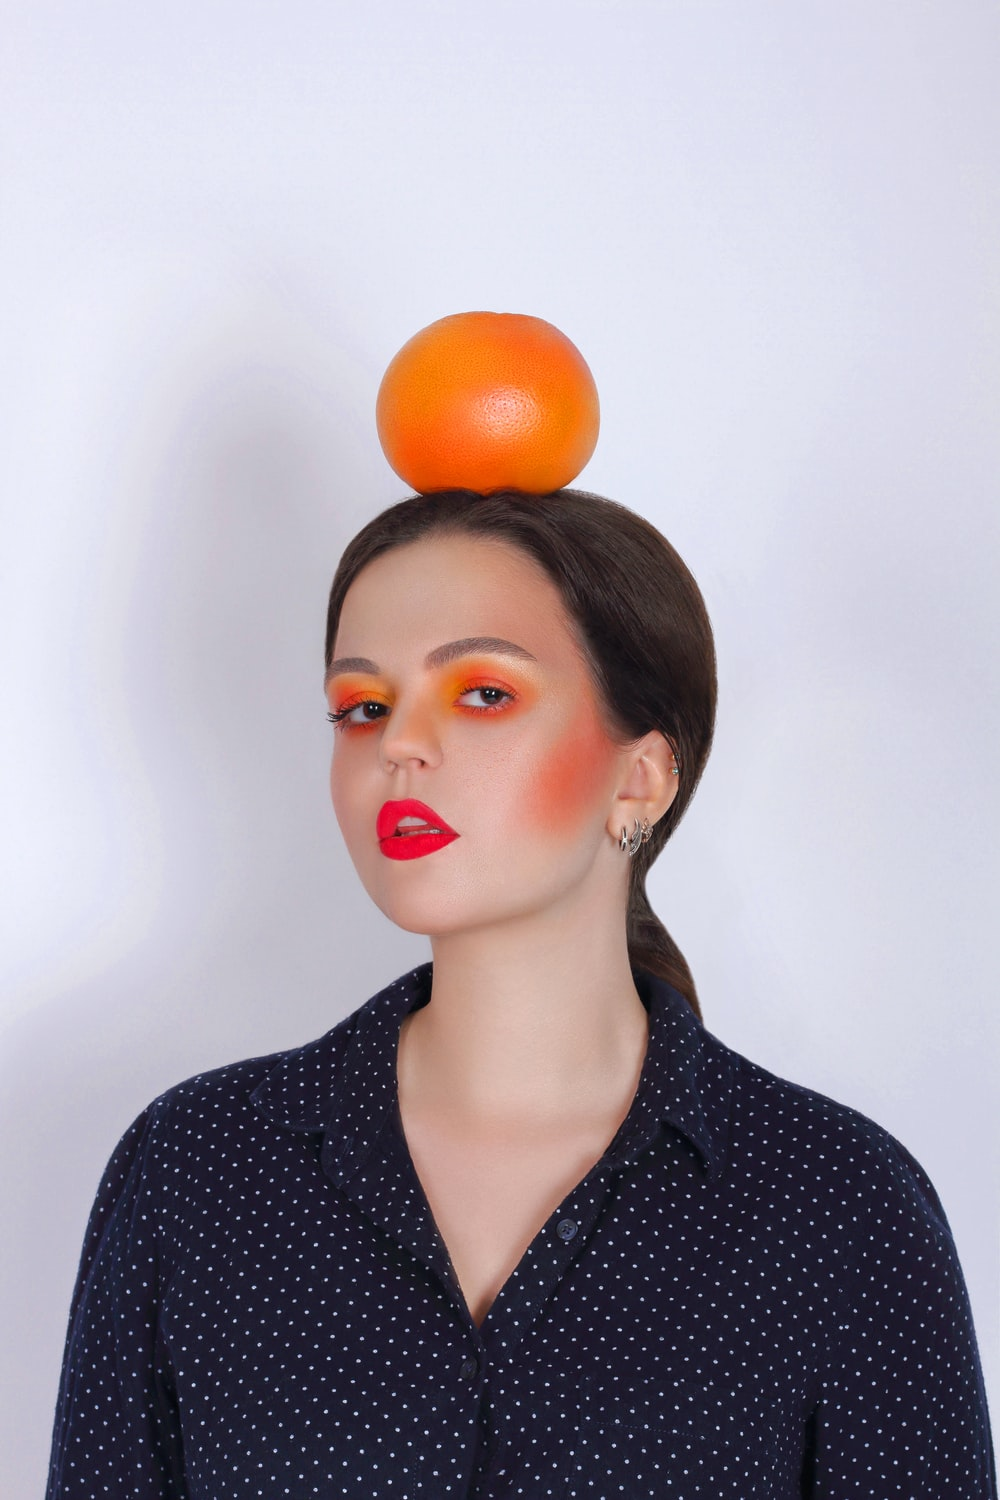 woman in black and white polka dot shirt with orange round fruit on her head